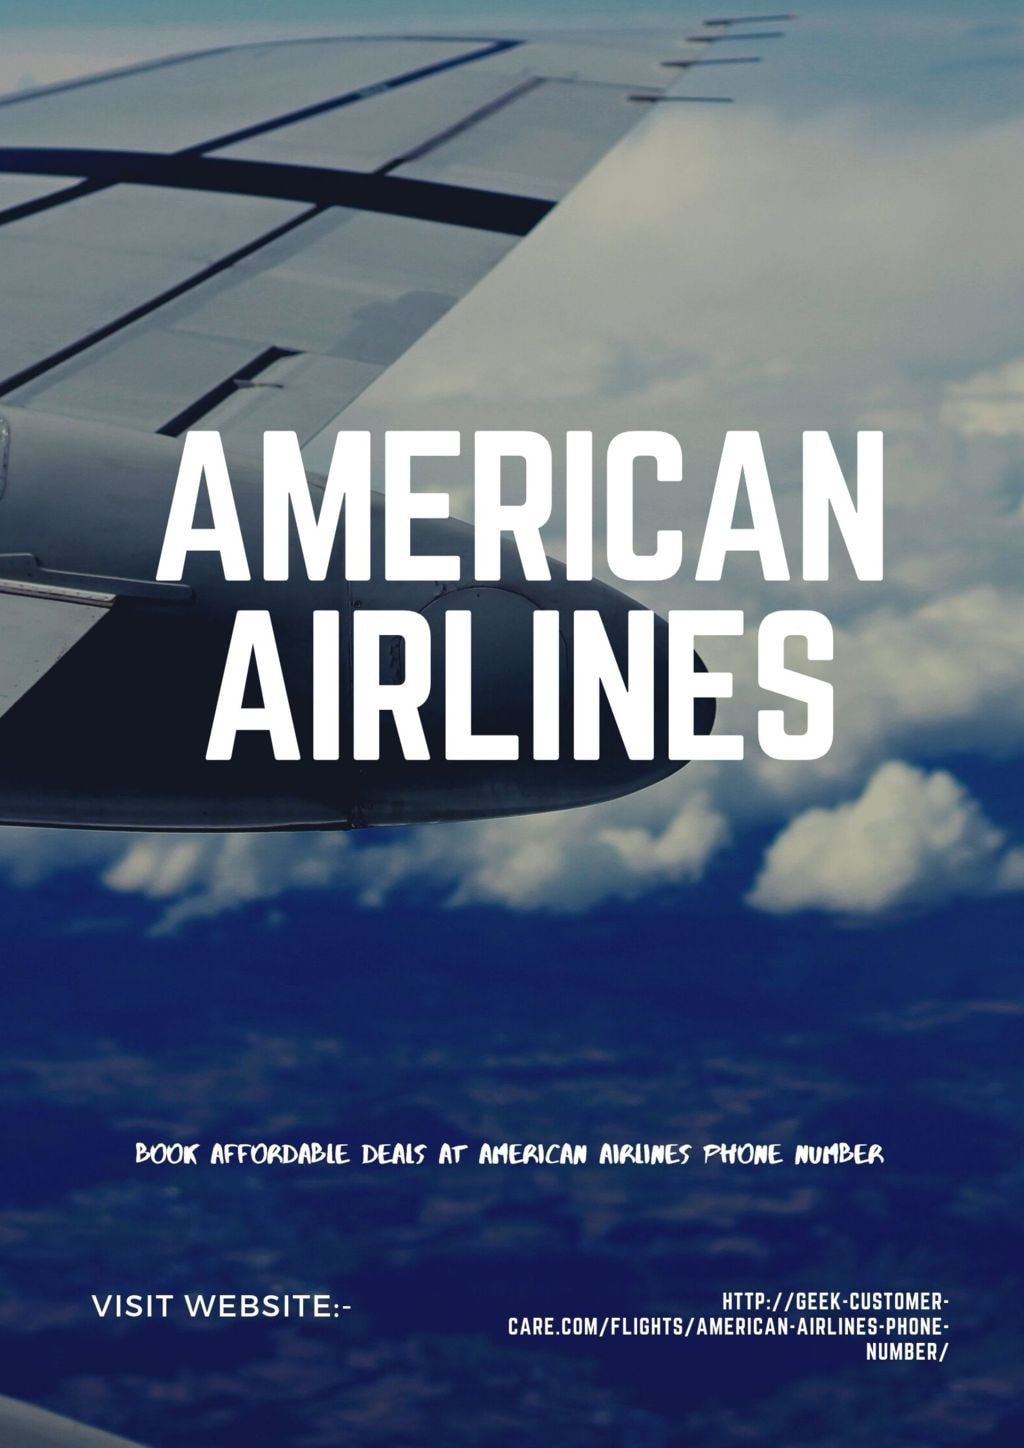 Book Affordable deals at American Airlines Phone Number via Harry Thomas